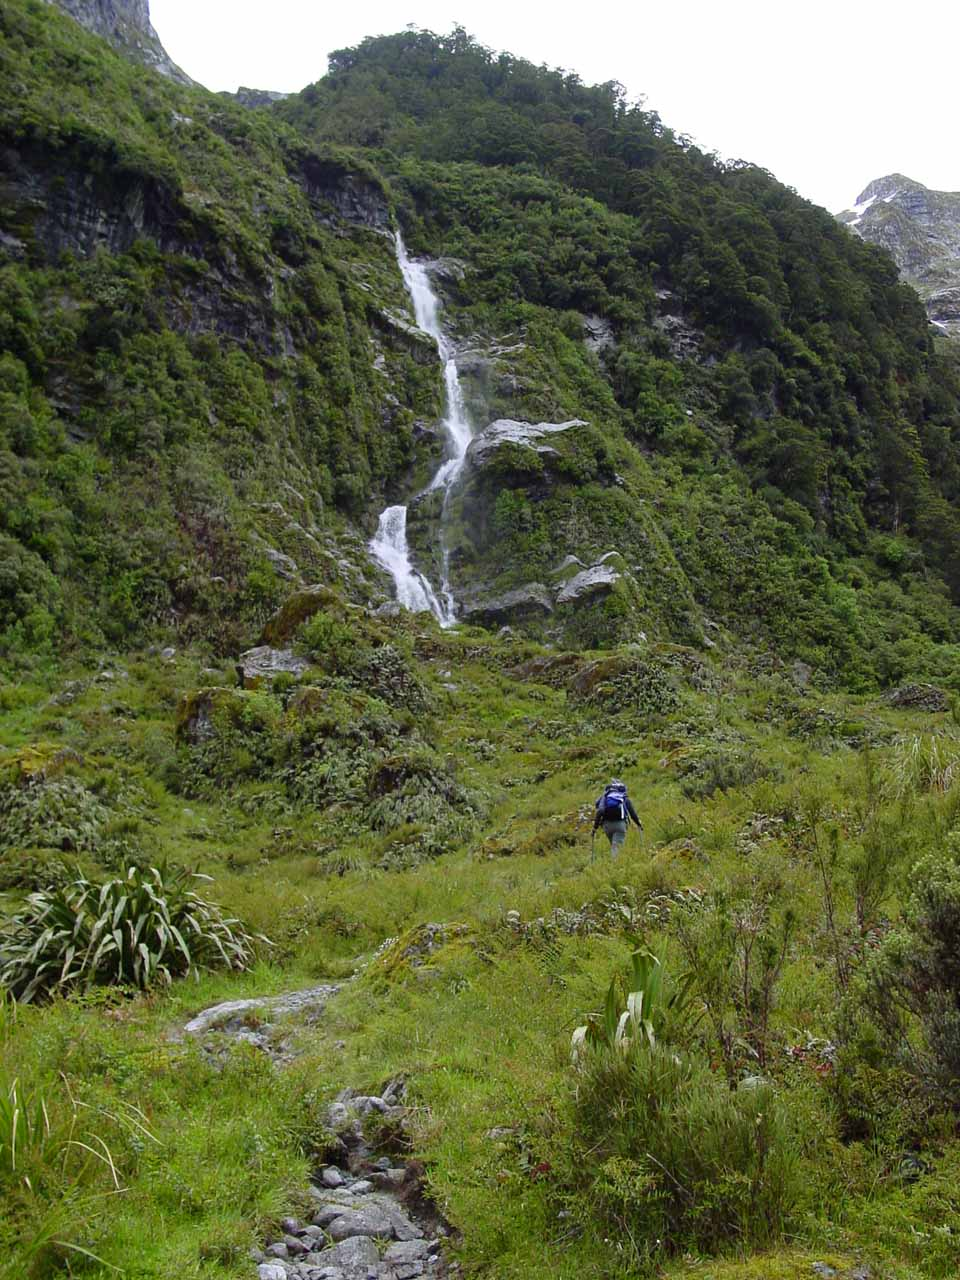 Julie passing before one of the thicker unnamed waterfalls on Day 3 of the Milford Track